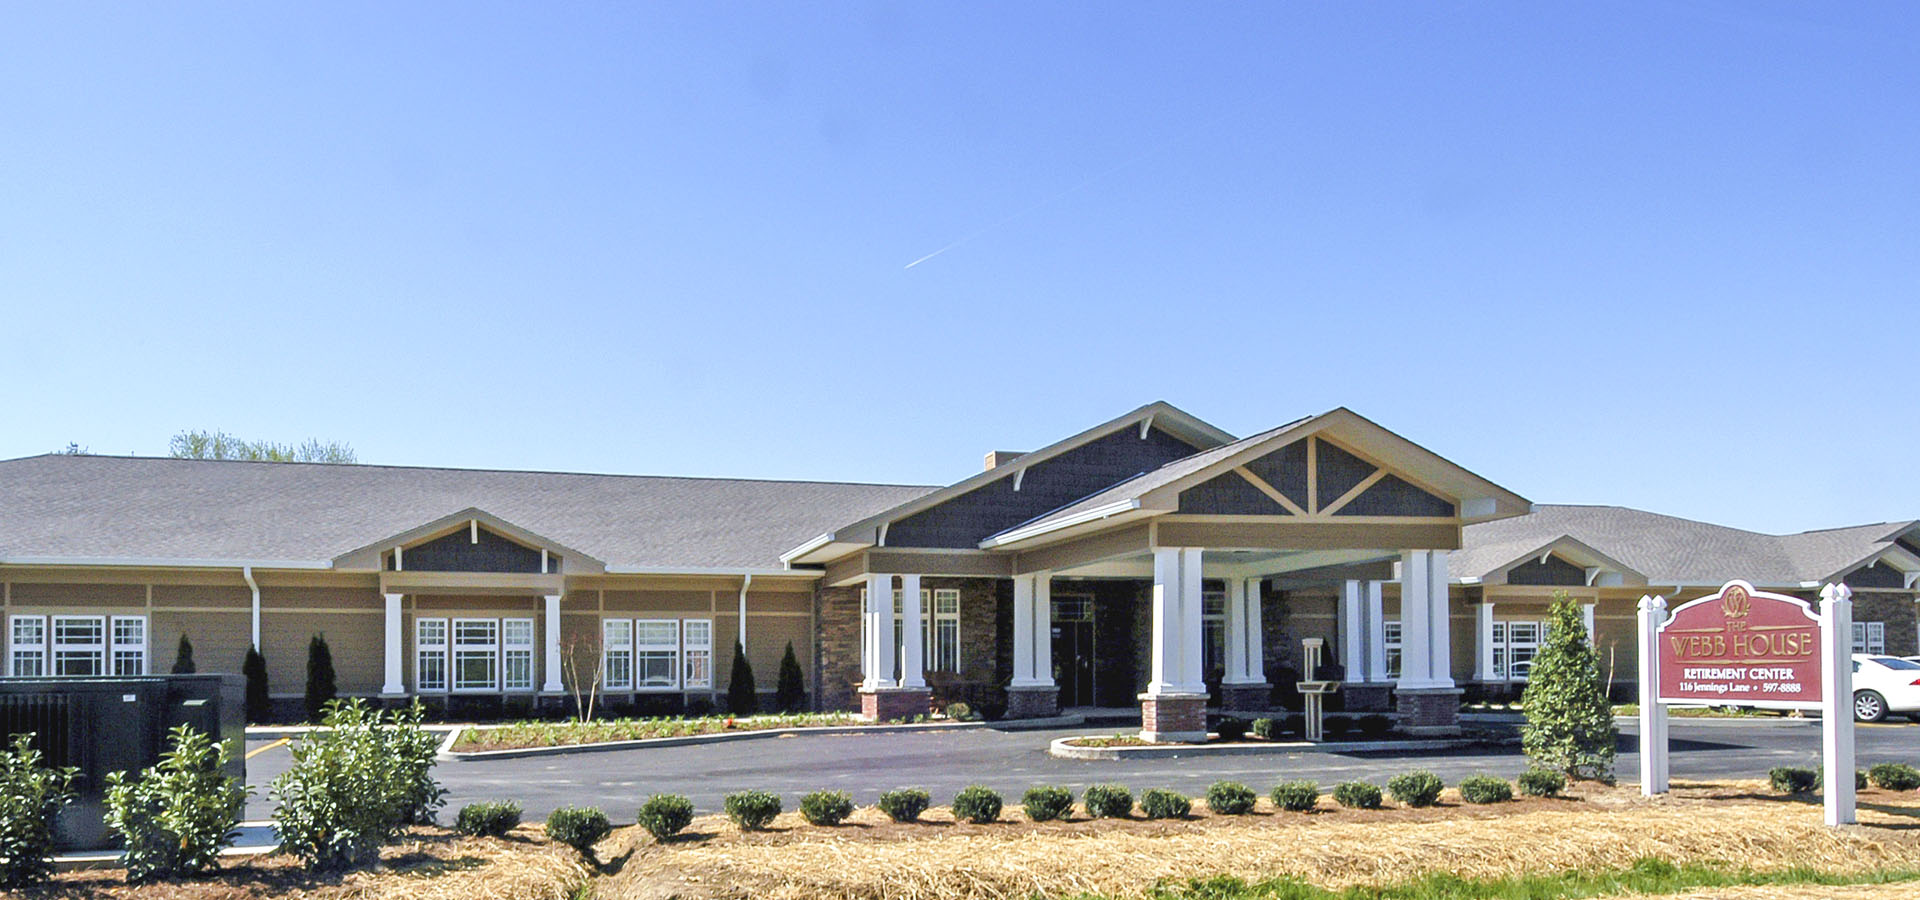 Webb House Retirement Center | Smithville, Tennessee | Brindley Construction, LLC.